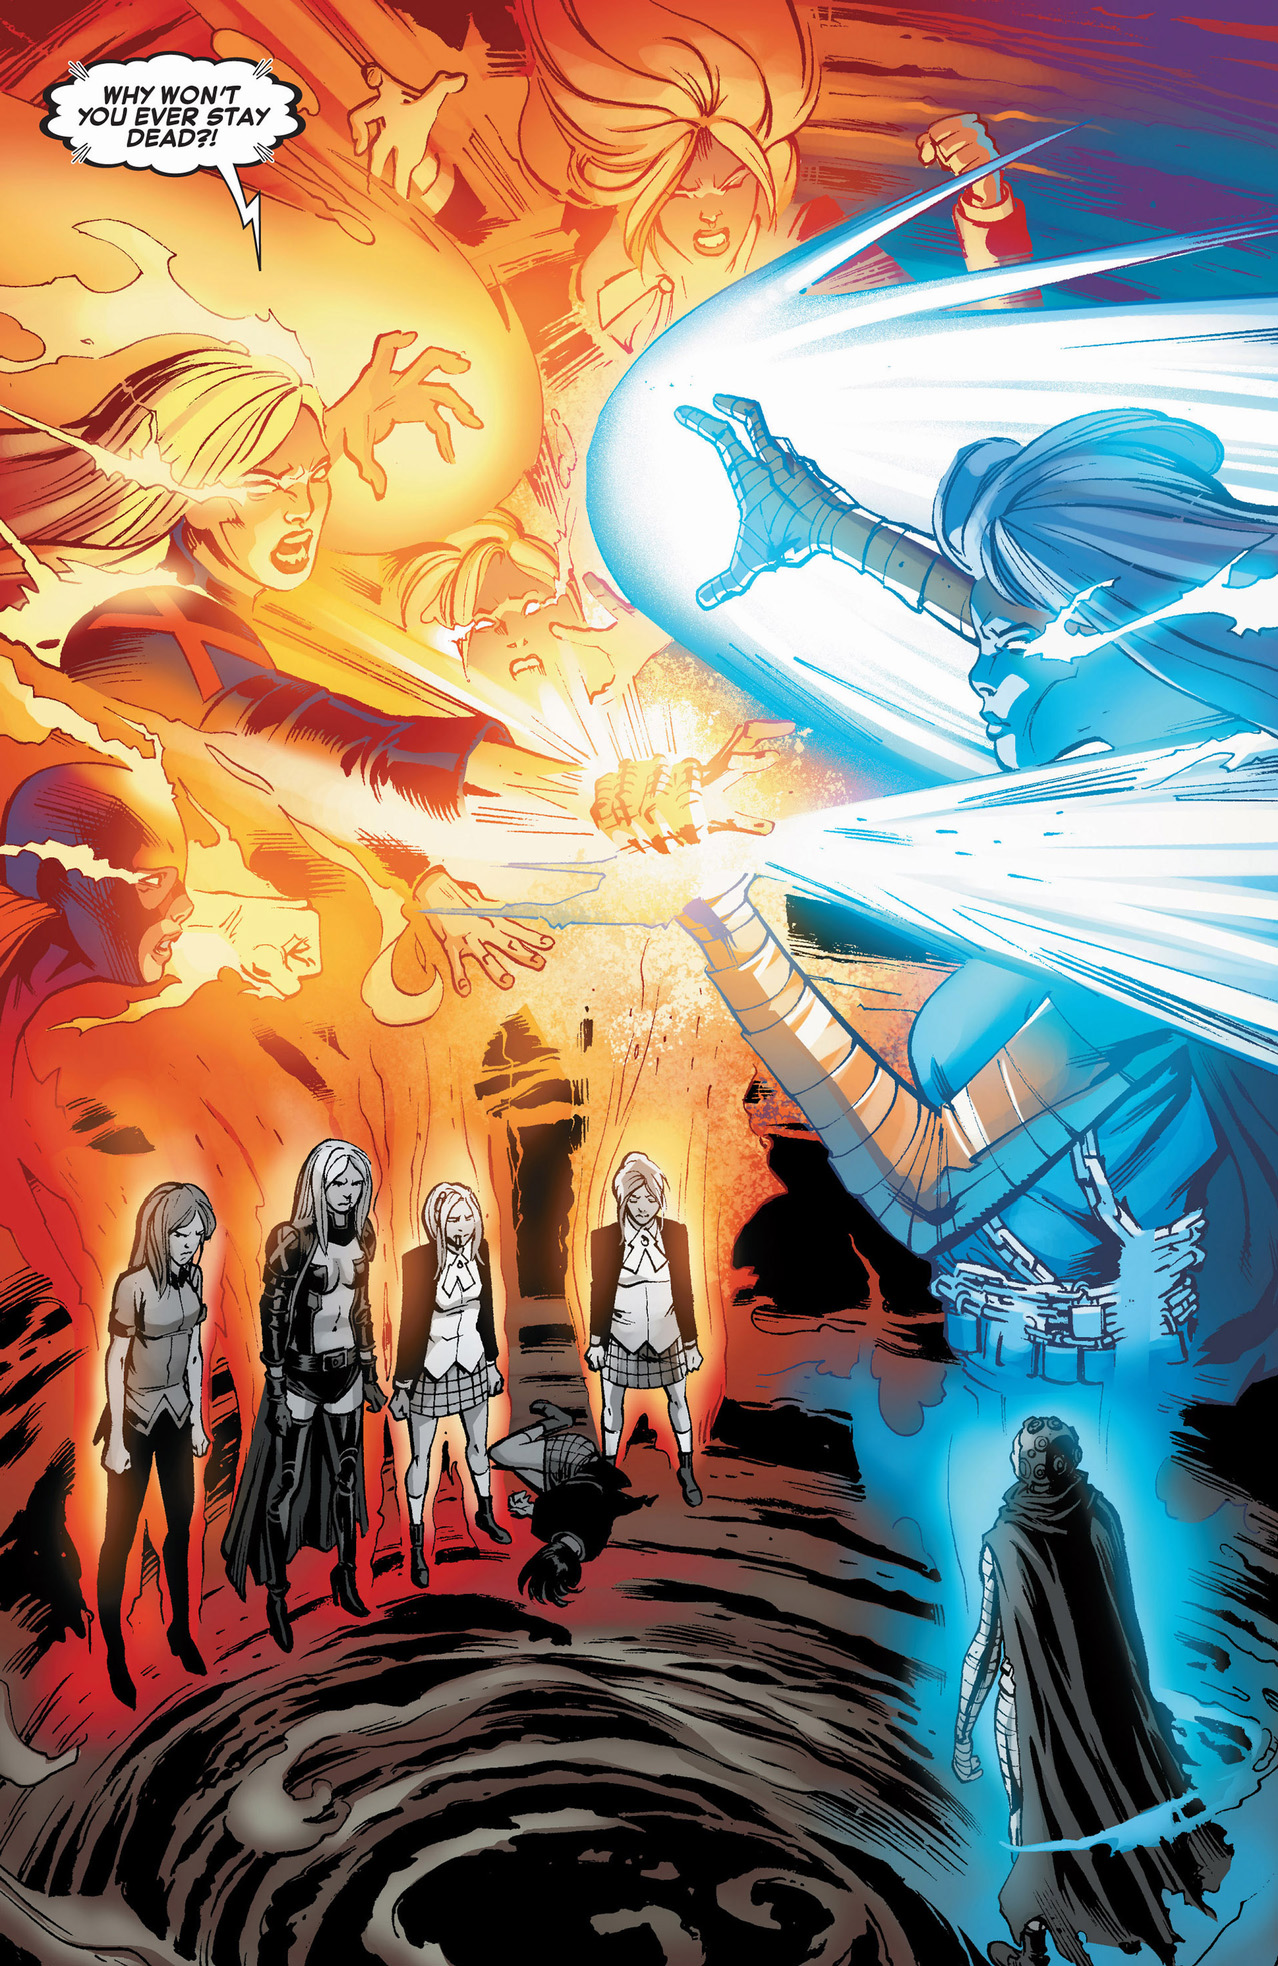 Yoda Wallpaper Quotes Emma Frost Jean Grey And The Stepford Cuckoos Vs Future